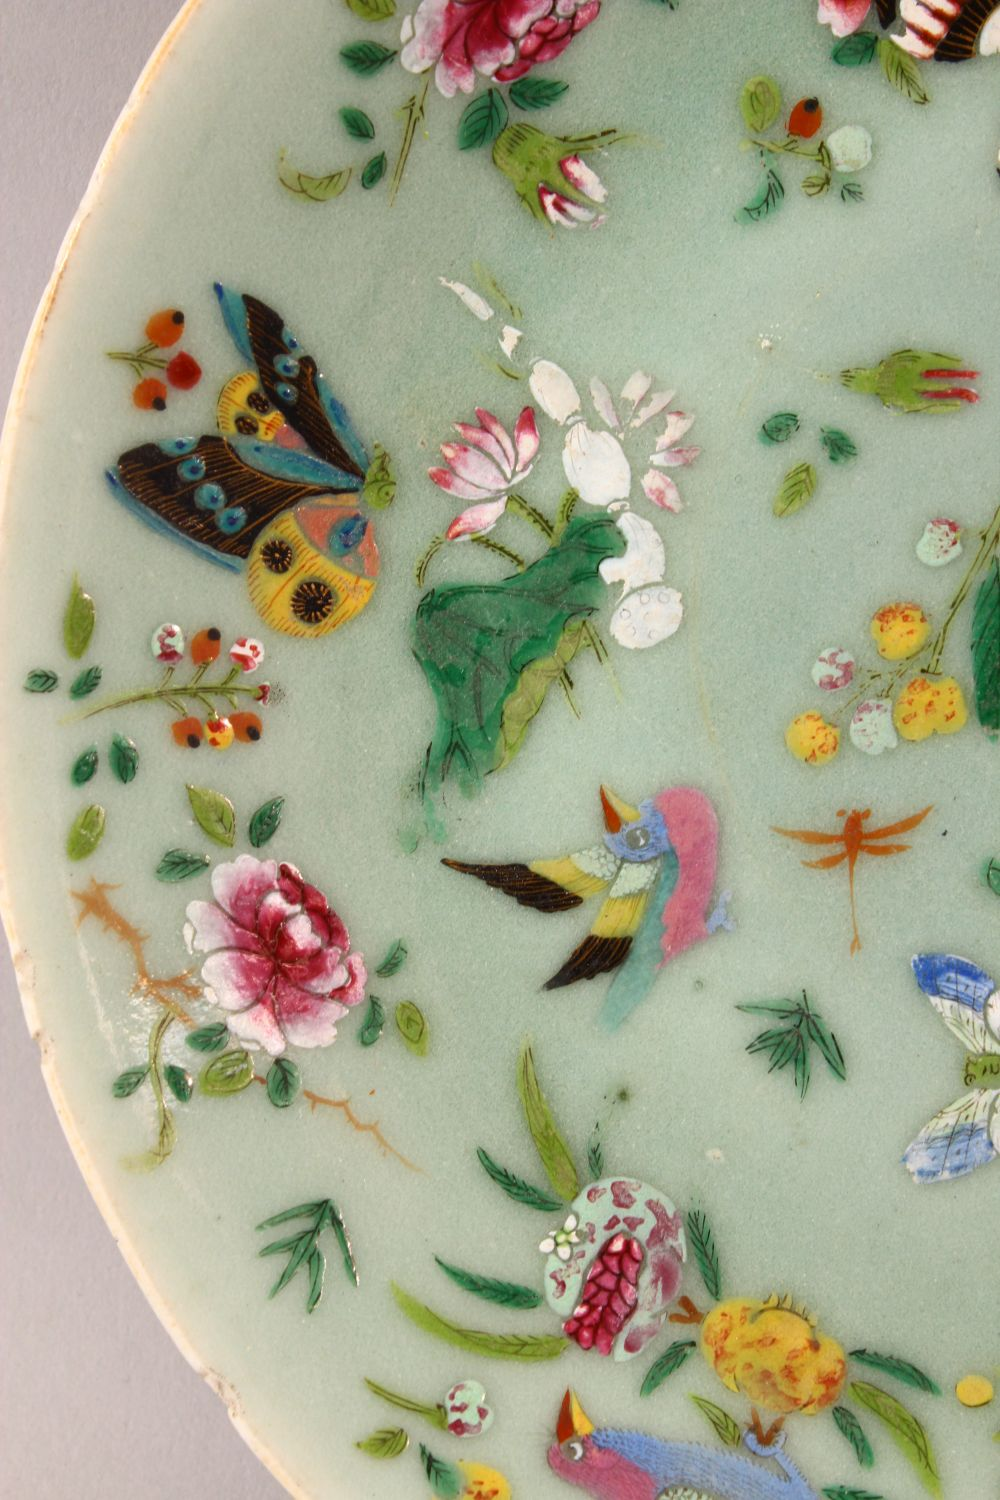 A 19TH CENTURY CHINESE CELADON FAMILLE ROSE PORCELAIN PLATE, With decoration of birds, flowers and - Image 3 of 7